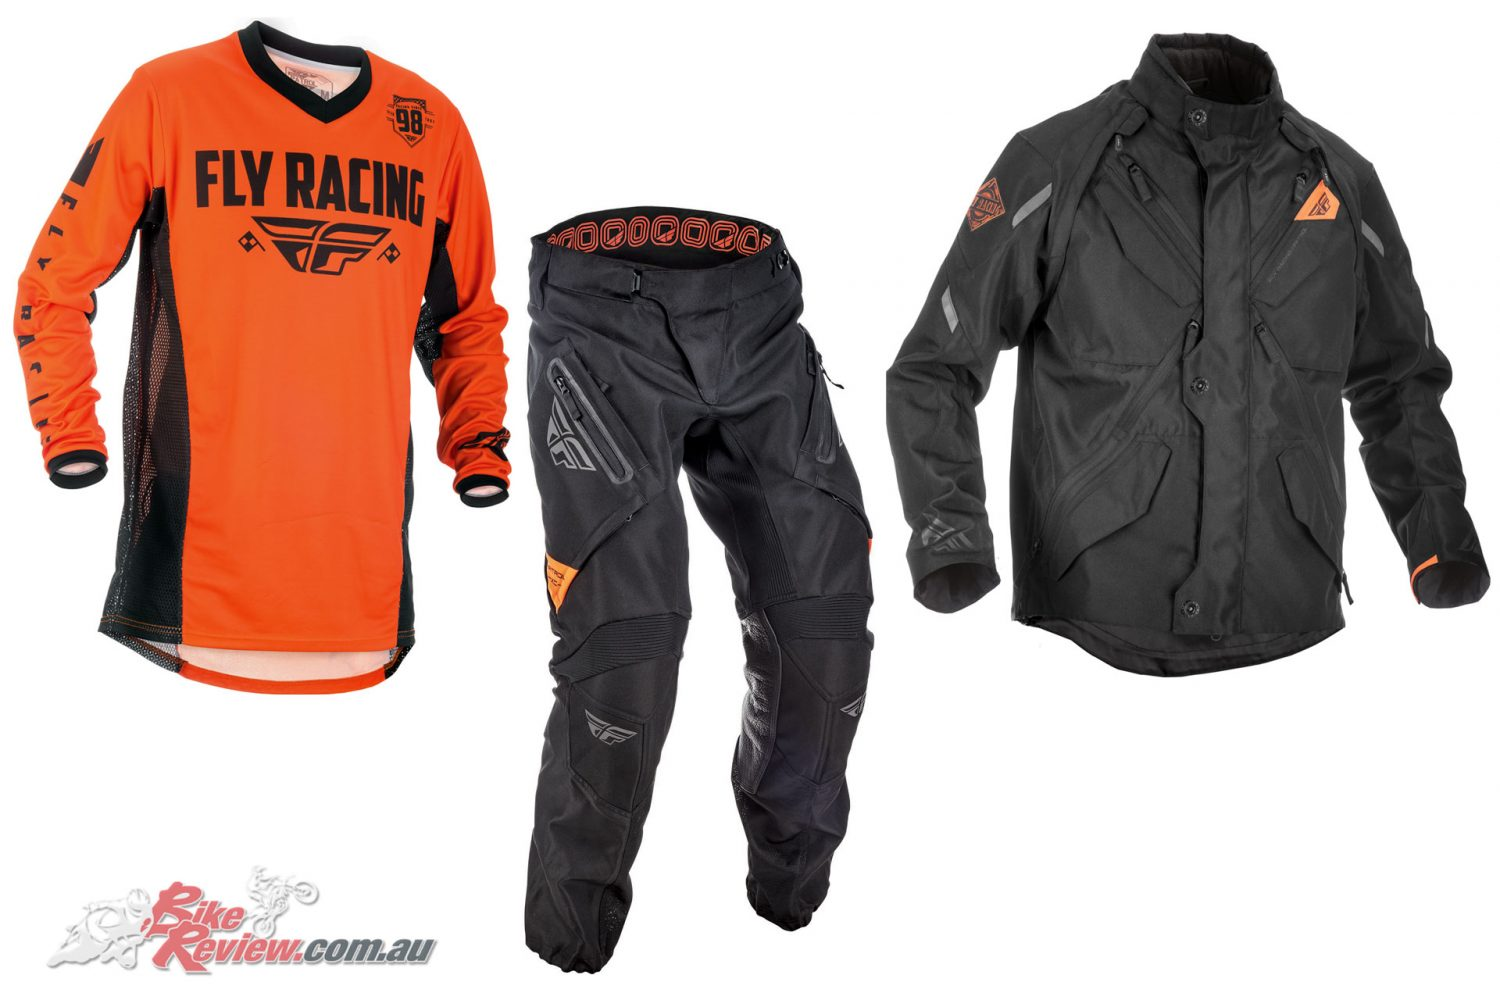 NEW FLY RACING PATROL XC MOTORCYCLE PANT MX ATV ADVENTURE DUAL SPORT